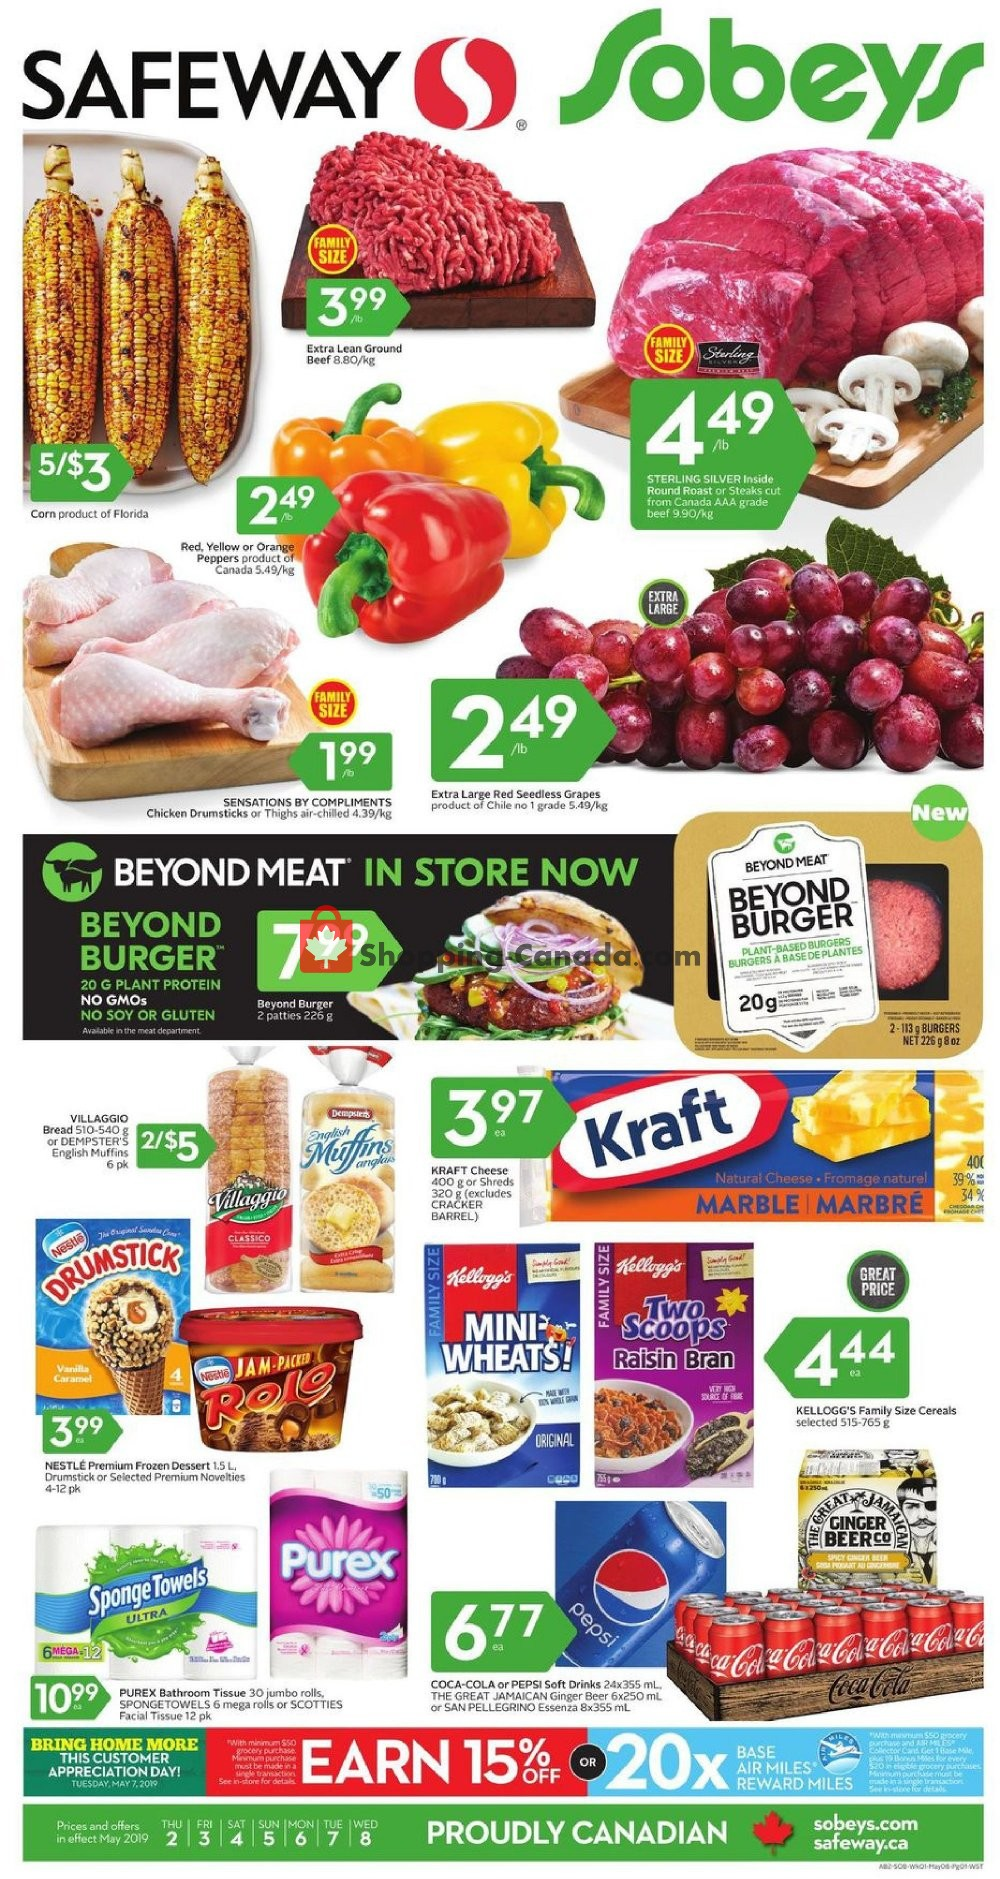 Flyer Safeway Canada - from Thursday May 2, 2019 to Wednesday May 8, 2019